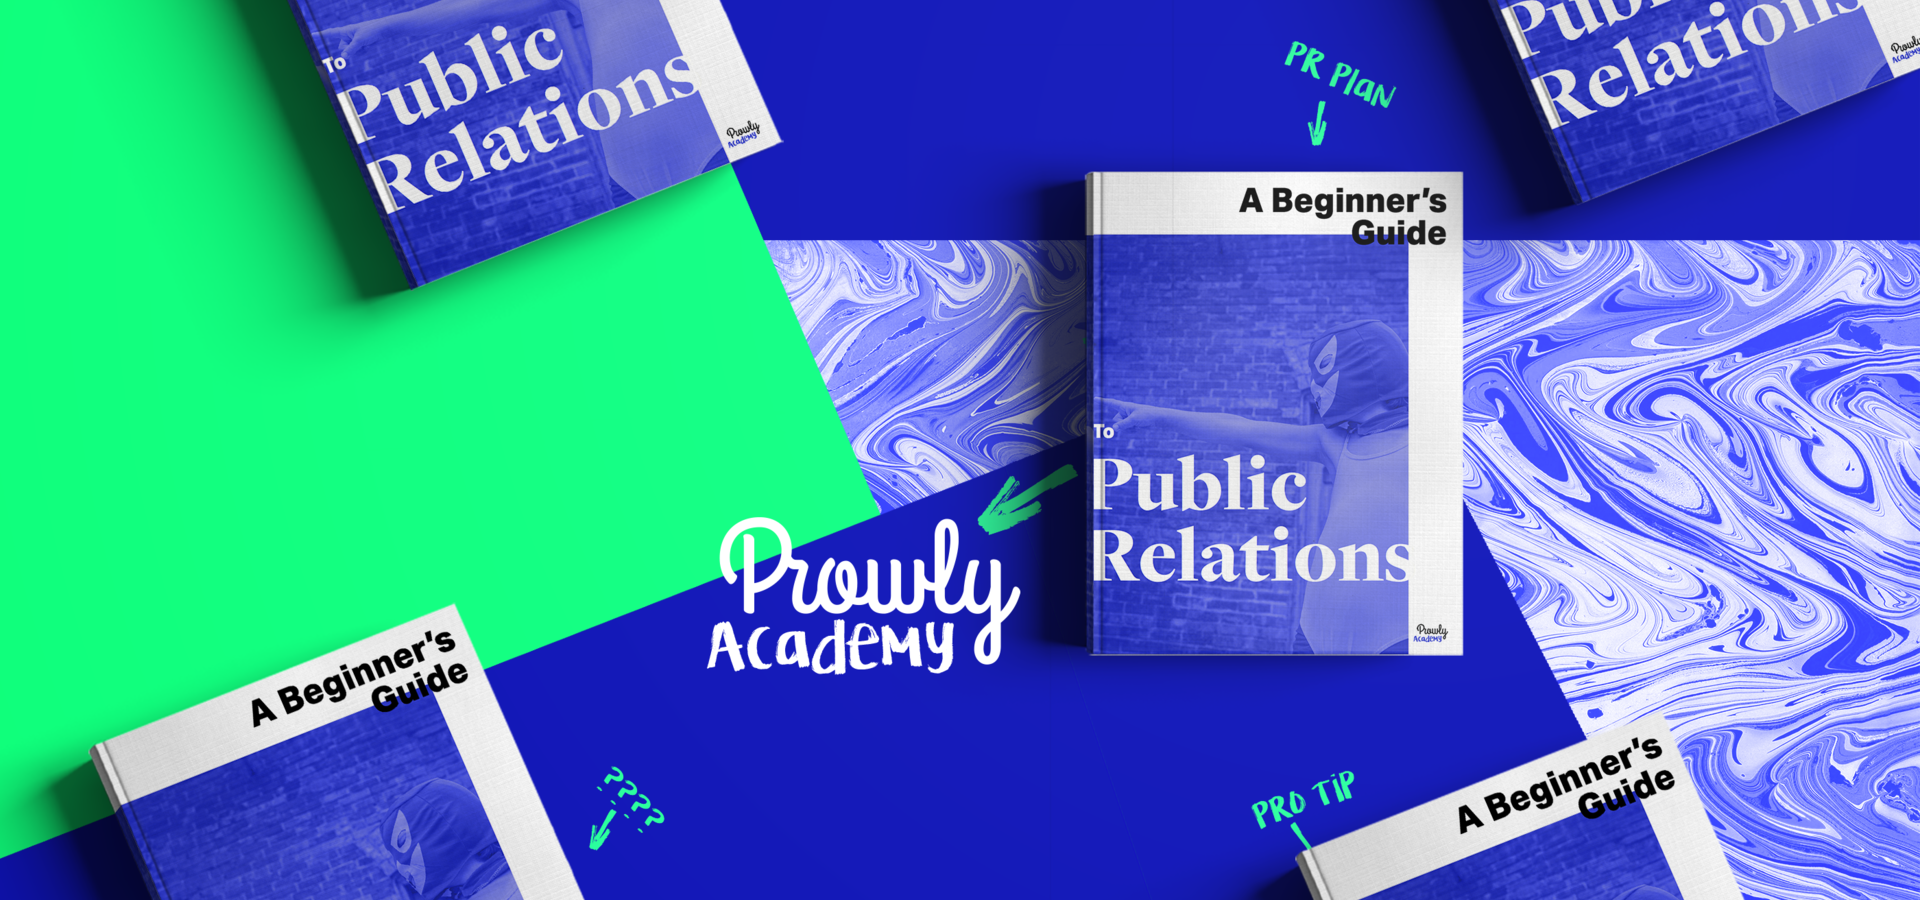 Public Relations for Beginners